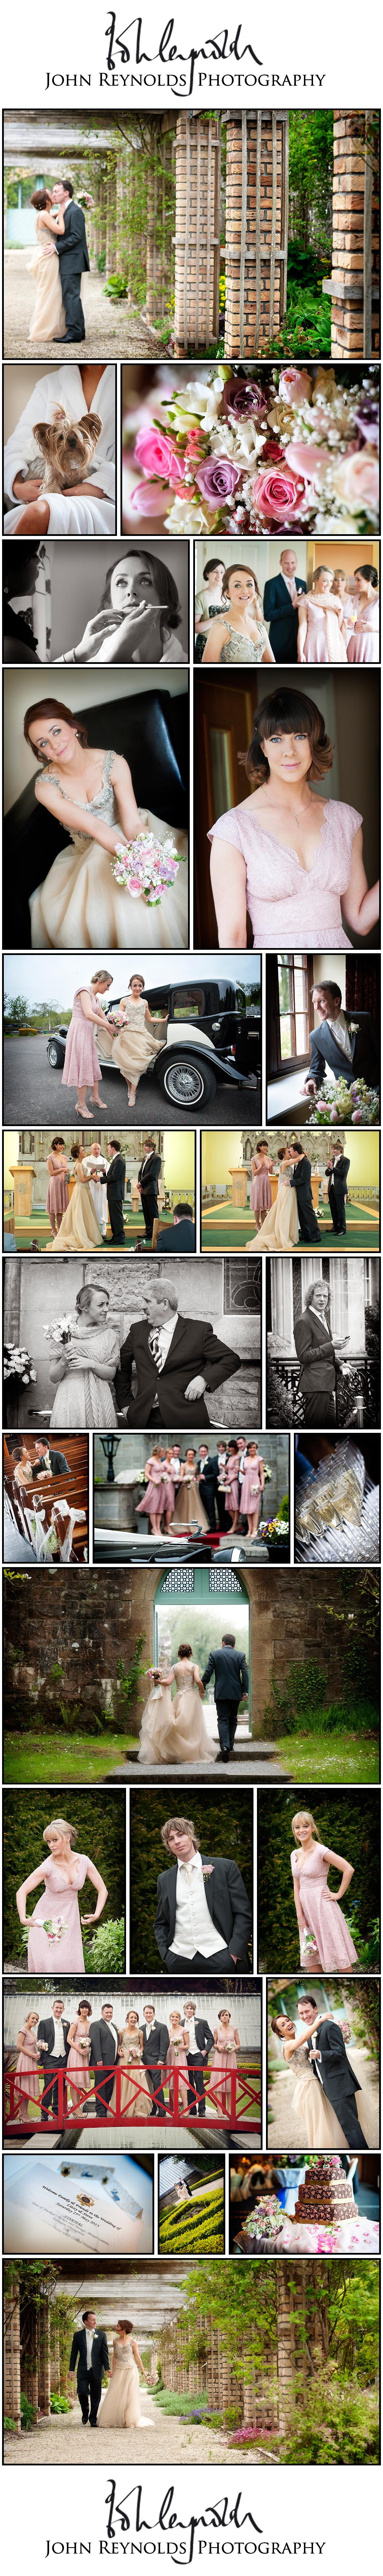 Lizzie & Steve Blog Collage